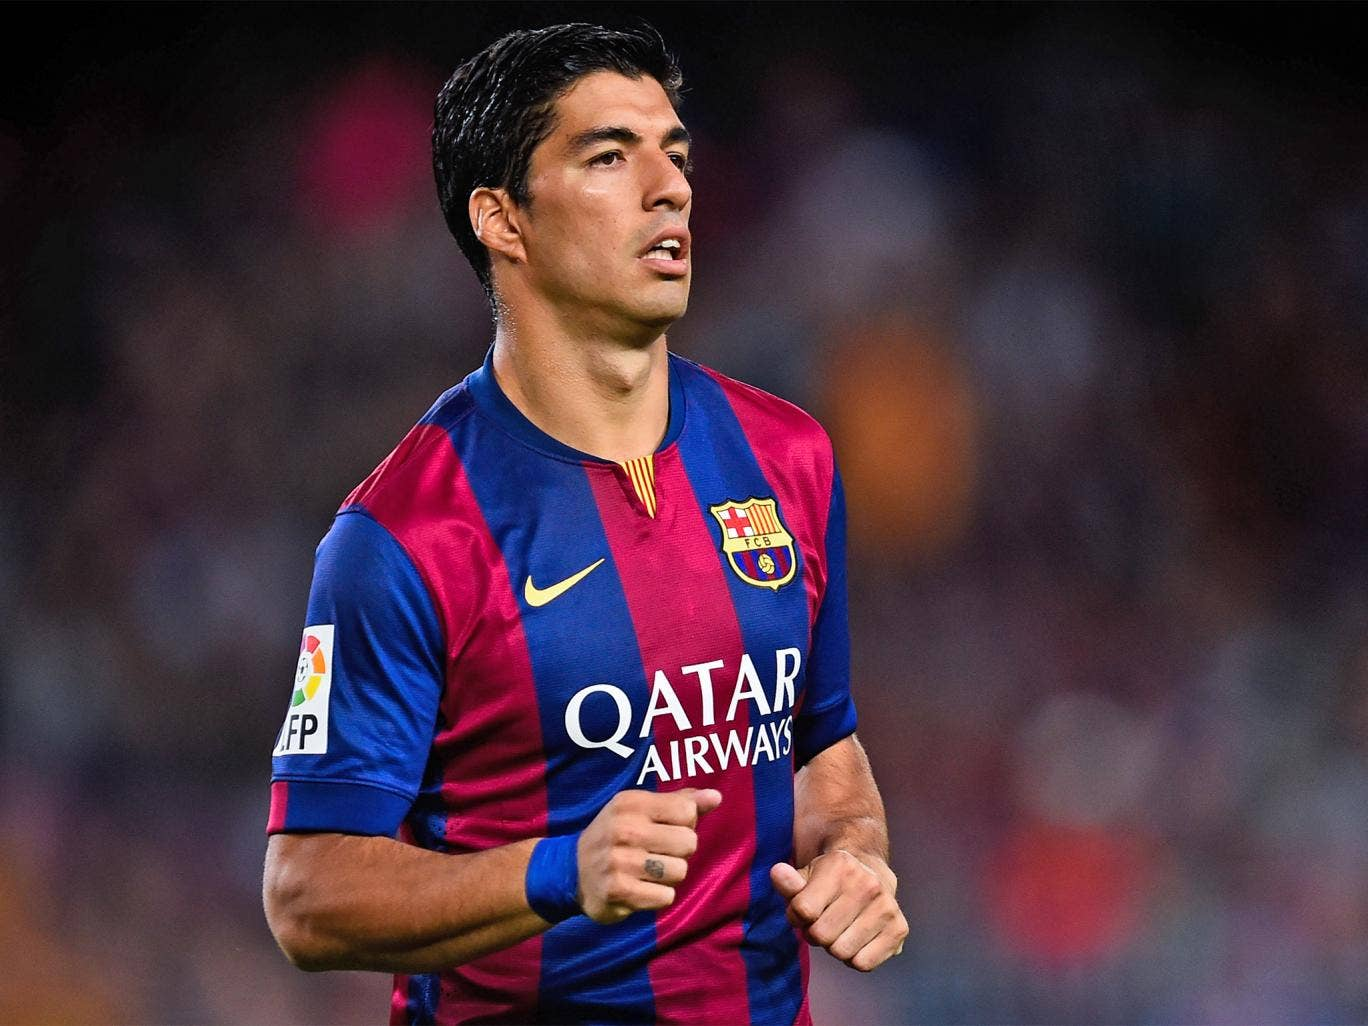 Barcelona have pinned their hopes on Luis Suarez giving them an edge in stemming the Real Madrid tide